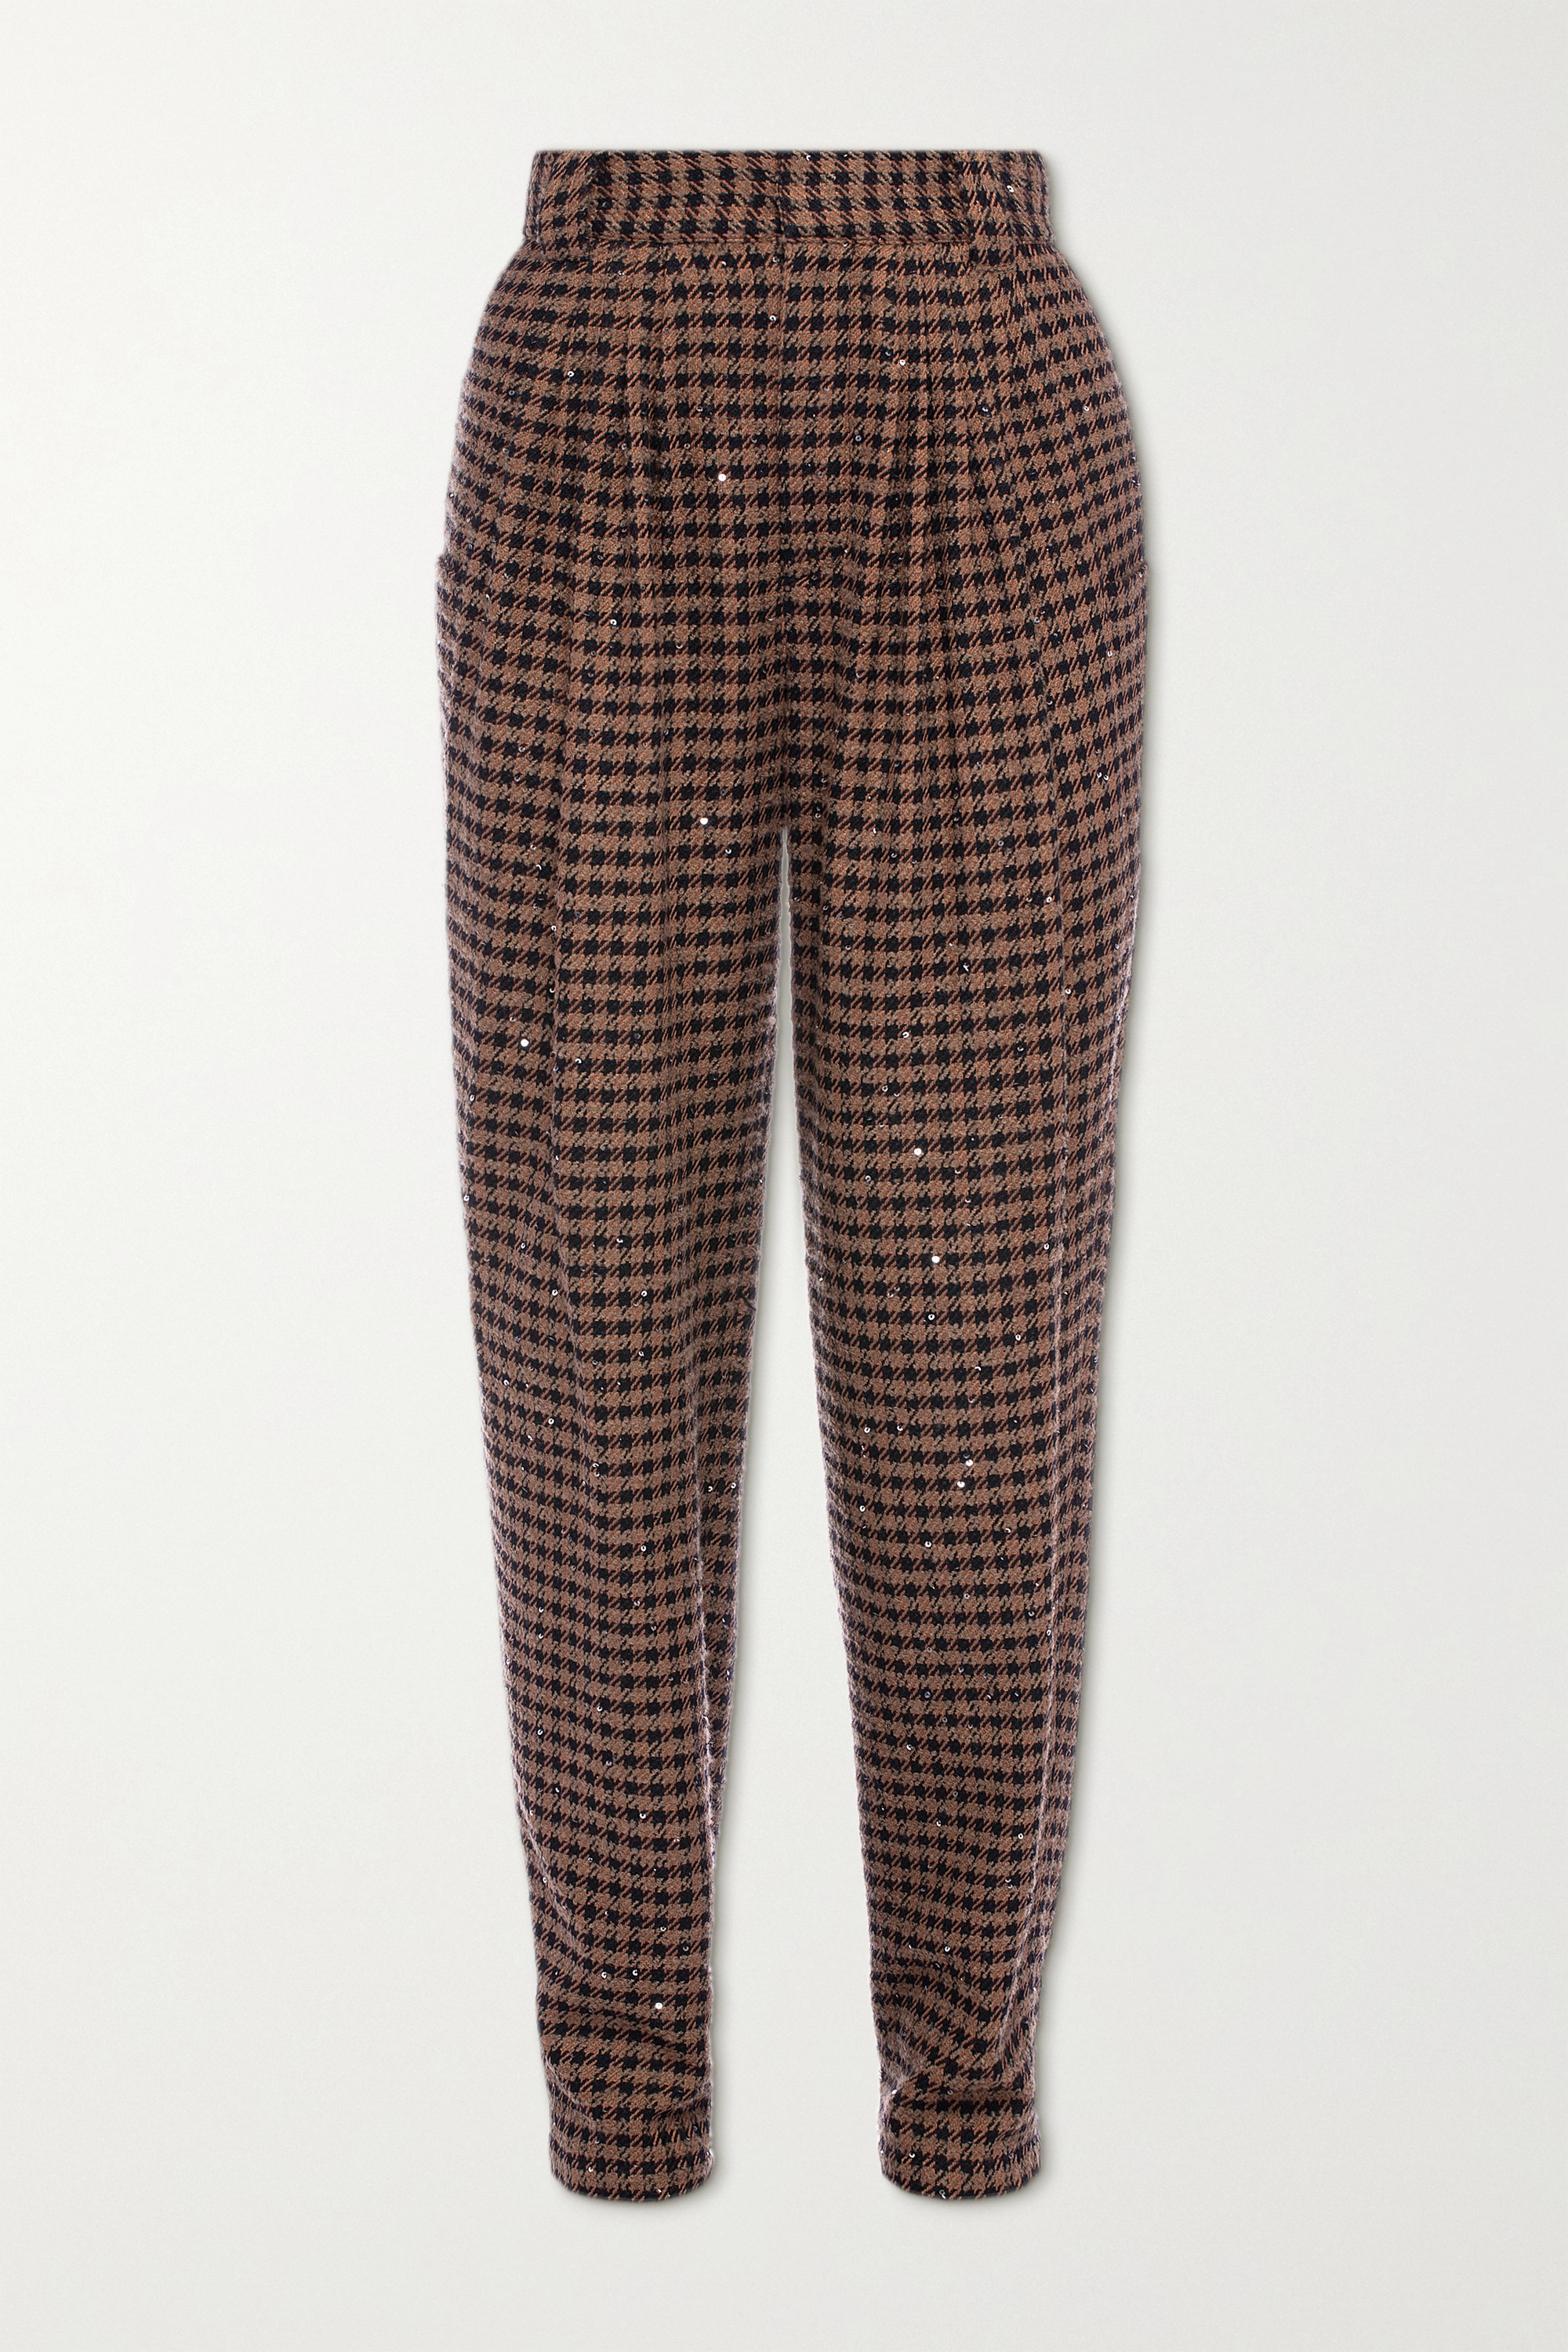 Alessandra Rich Vichy embellished houndstooth tweed tapered pants